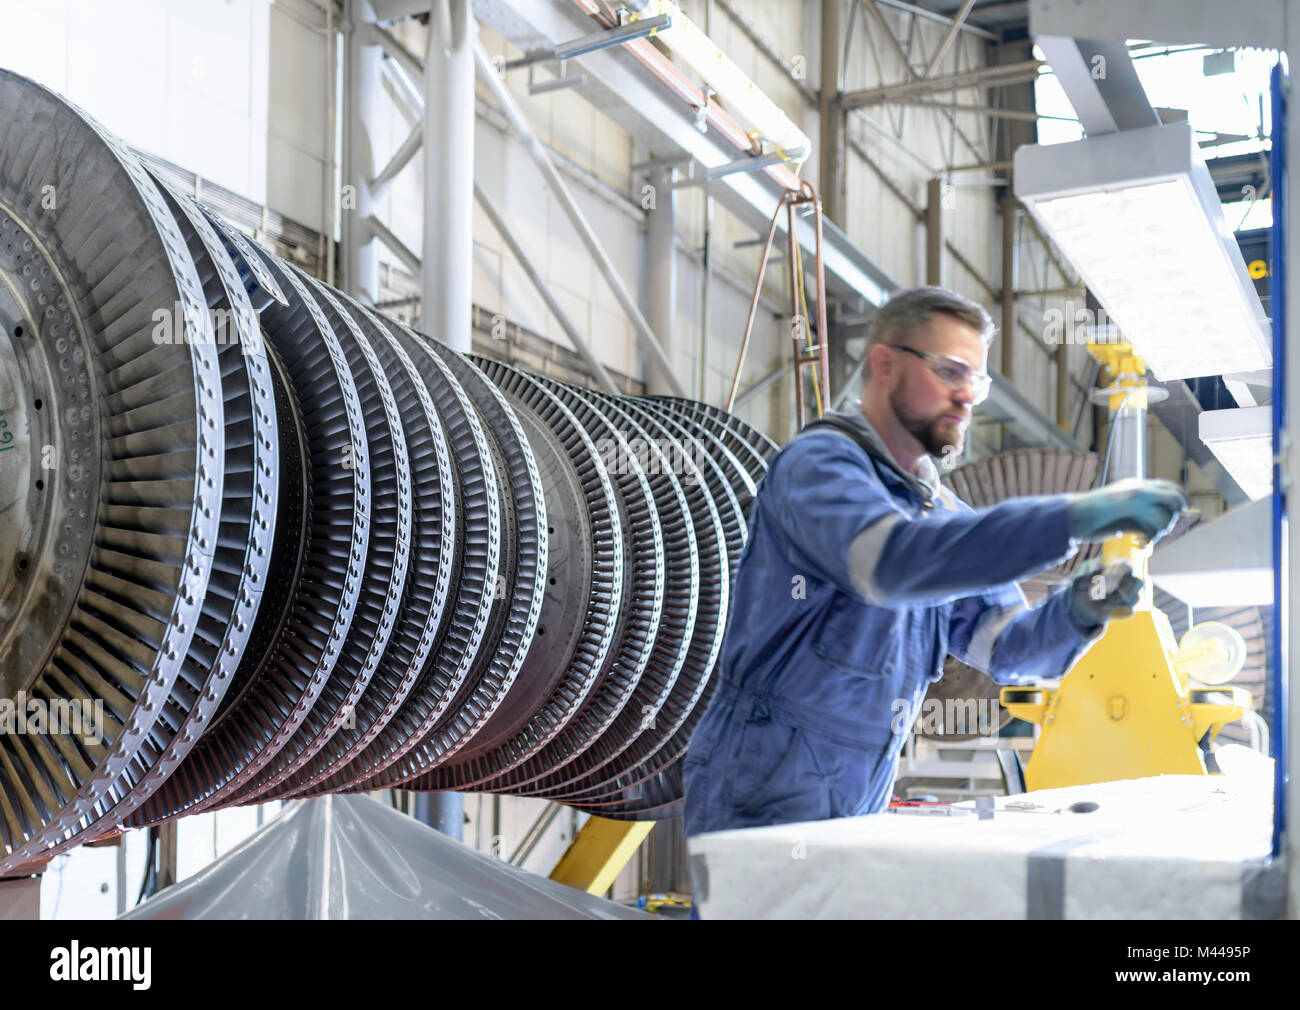 Engineer at workstation with high pressure steam turbine in turbine maintenance factory - Stock Image